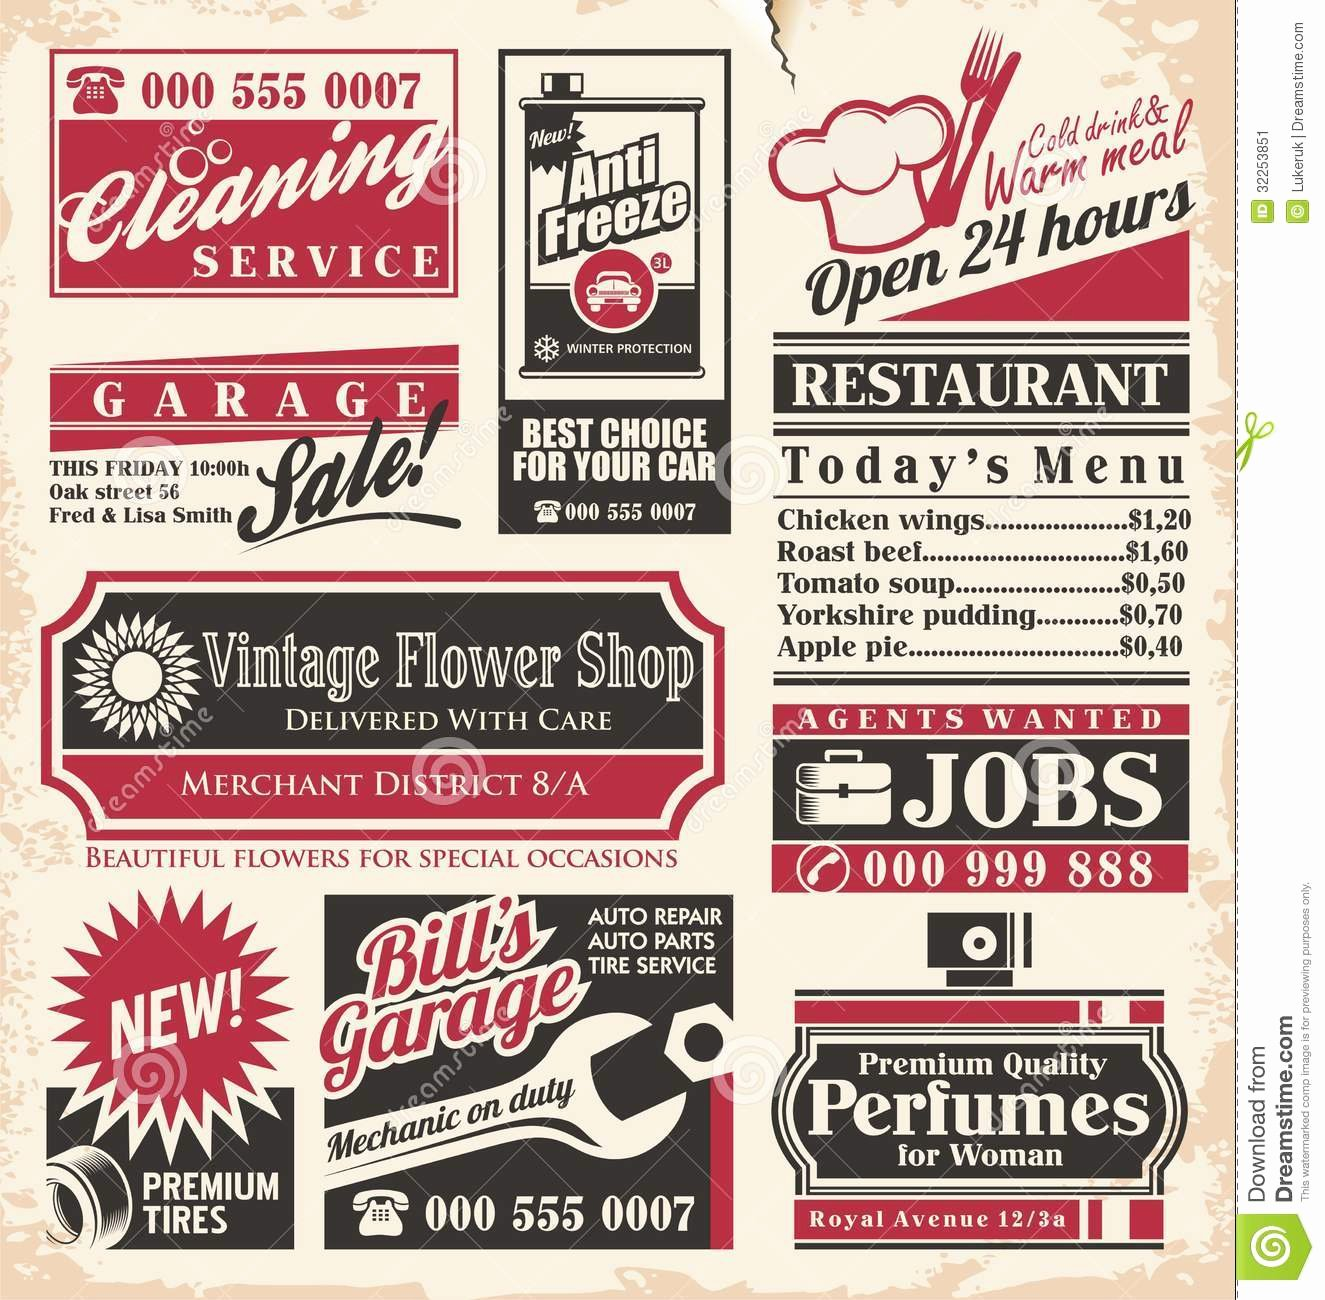 Old Time Newspaper Template Best Of Retro Newspaper Ads Design Template Stock Vector